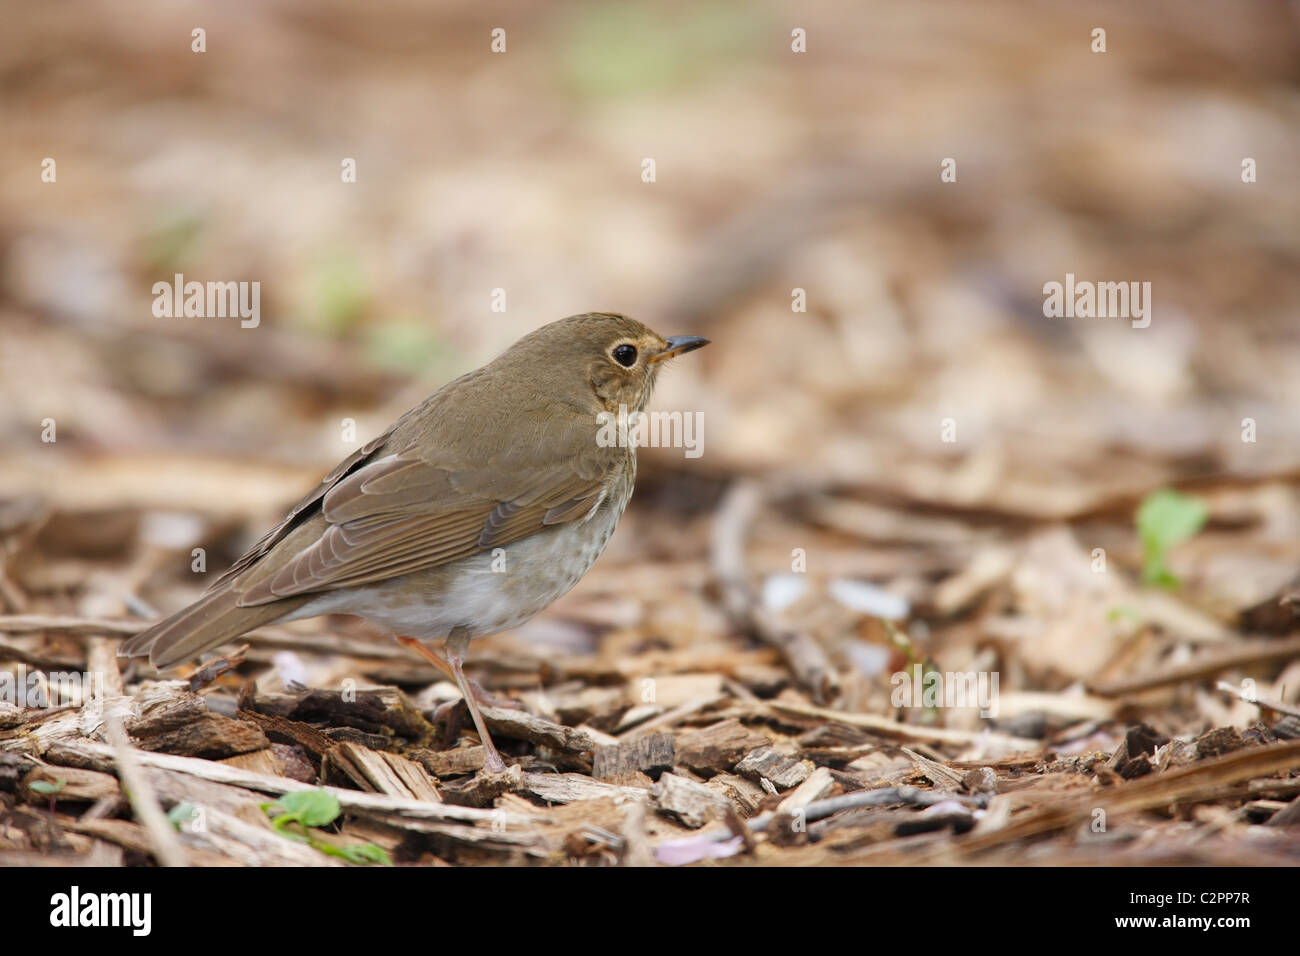 Swainson's Thrush (Catharus ustulatus swainsoni), Olive-backed subspecies, a Spring migrant to New York City's Central Stock Photo